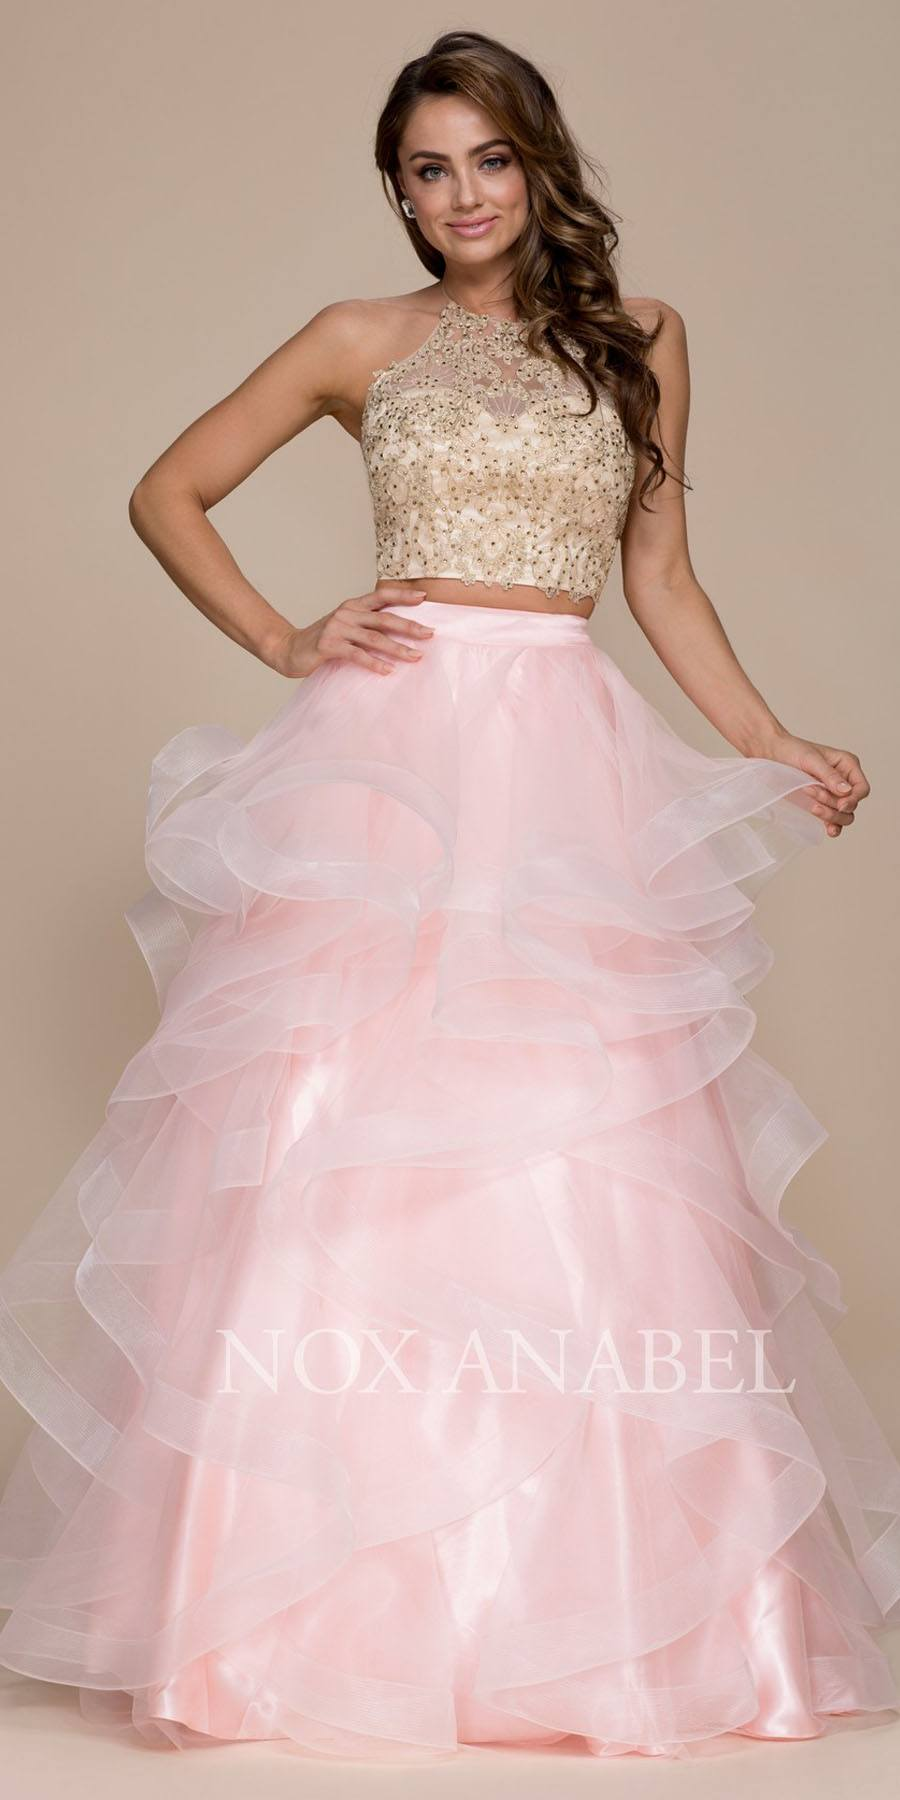 c4da79427aae Blush Gold Two-Piece Appliqued Prom Gown Ruffled Skirt. Tap to expand